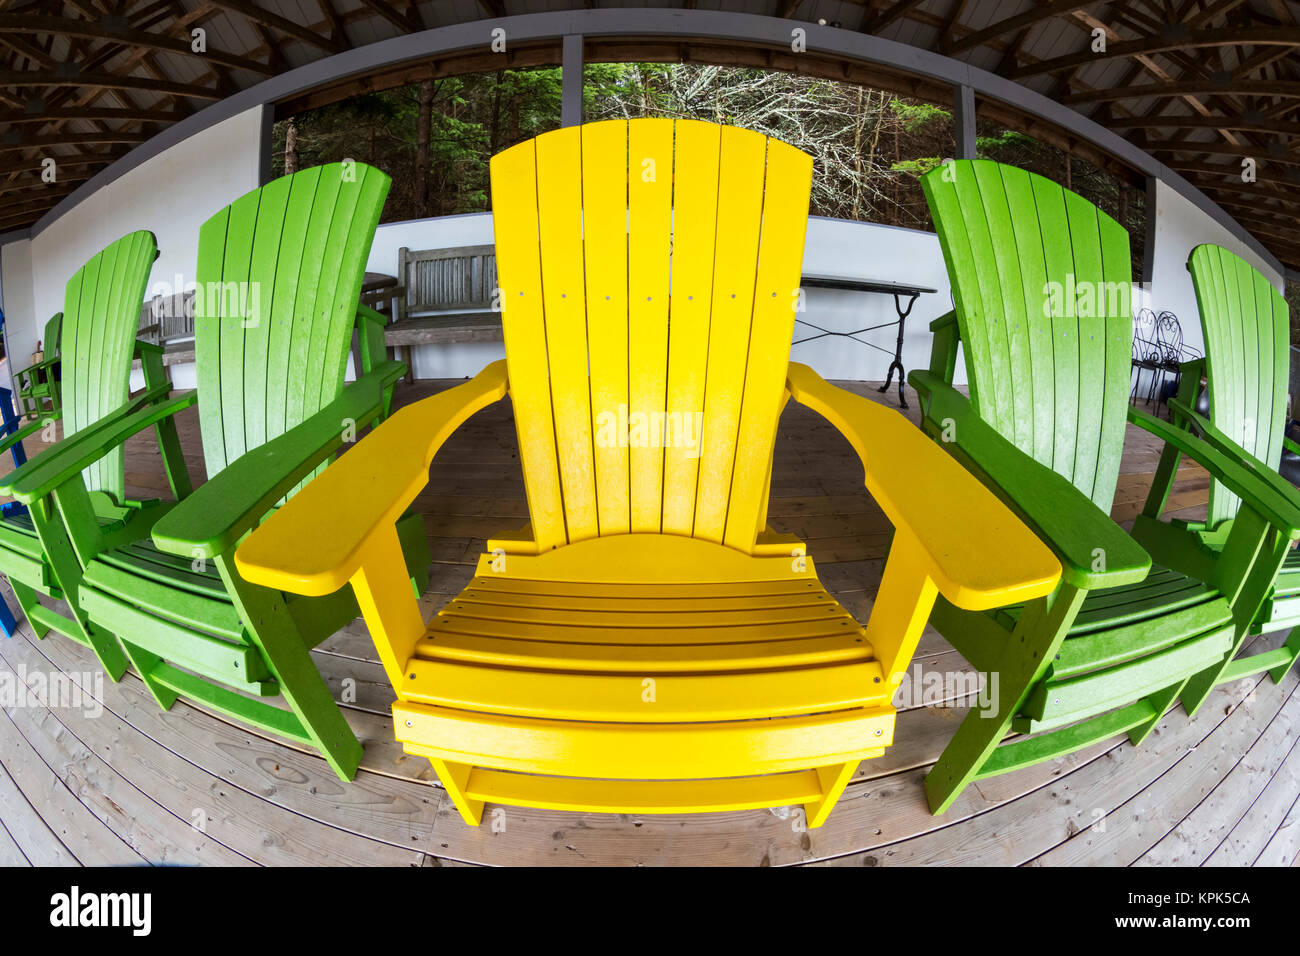 Adirondack Chair Sedie Da Giardino.Green Adirondack Chair Stock Photos Green Adirondack Chair